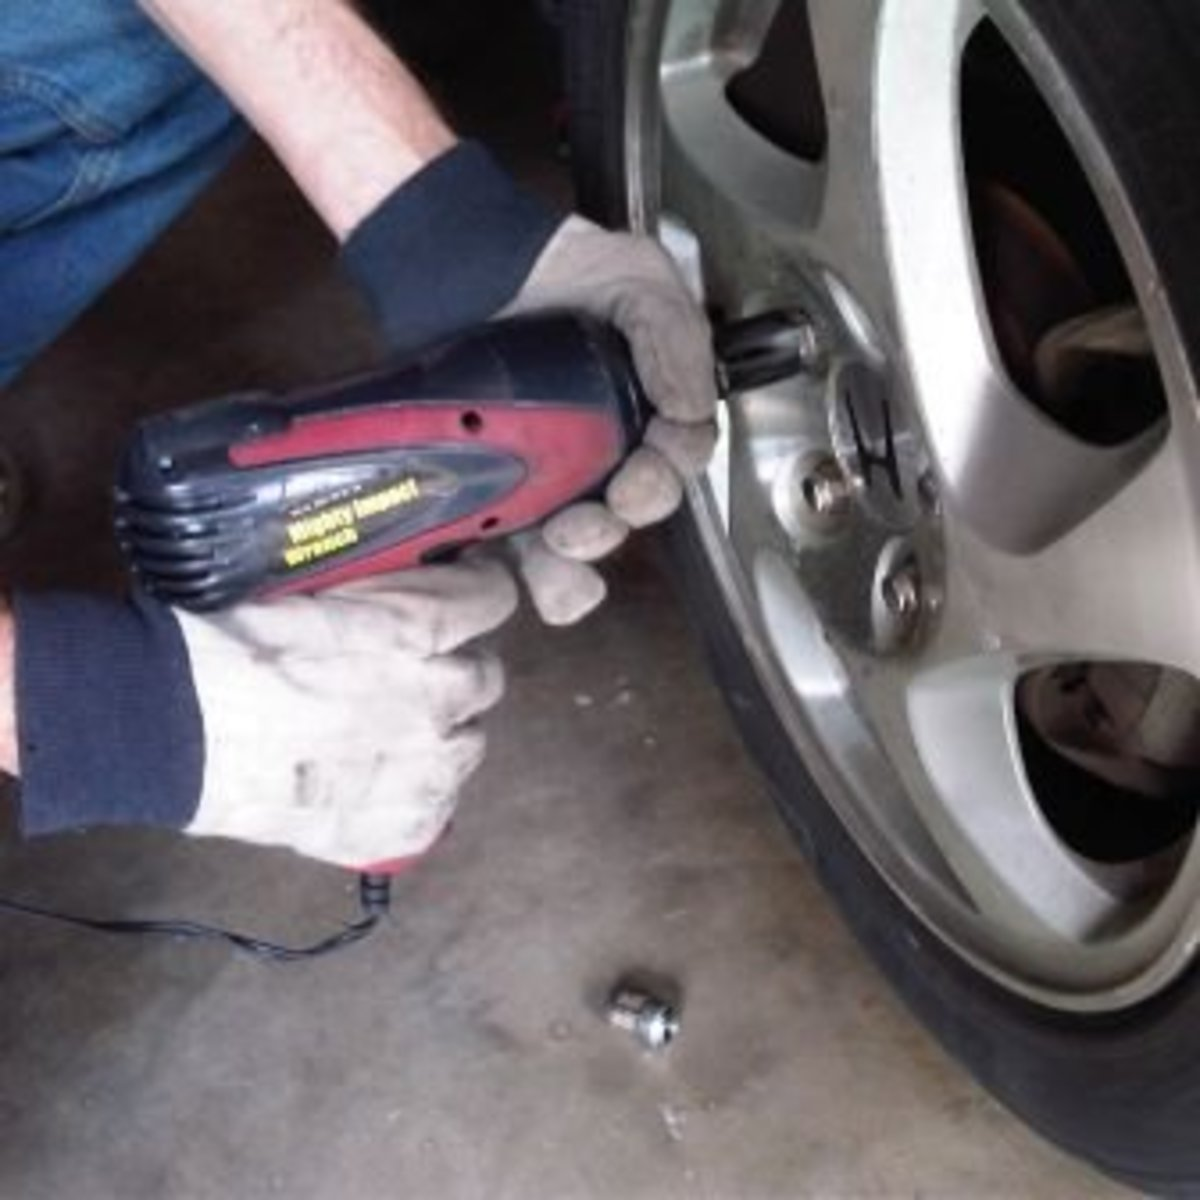 How to Buy an Impact Torque Wrench for Lug Nuts